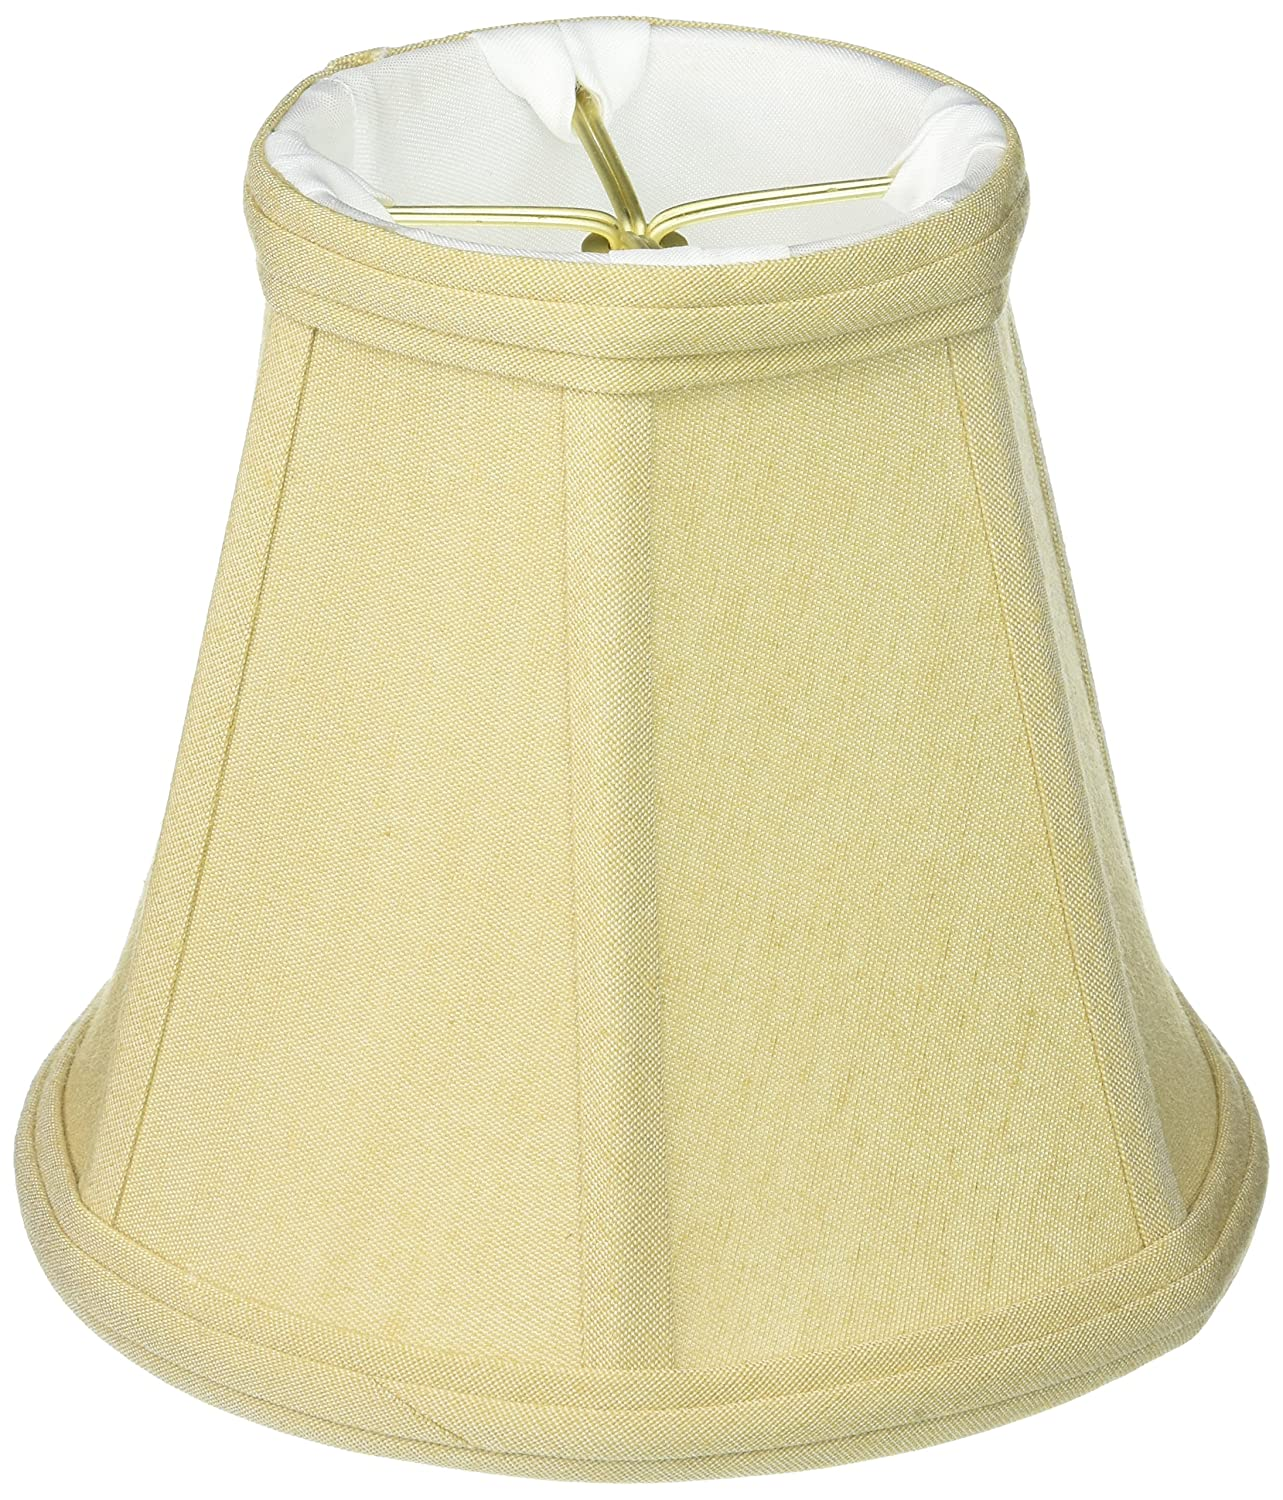 Flame Clip Royal Designs BS-707FC-6AGL deep Empire Lamp Shade Antique Gold 3.5 x 6 x 5.75